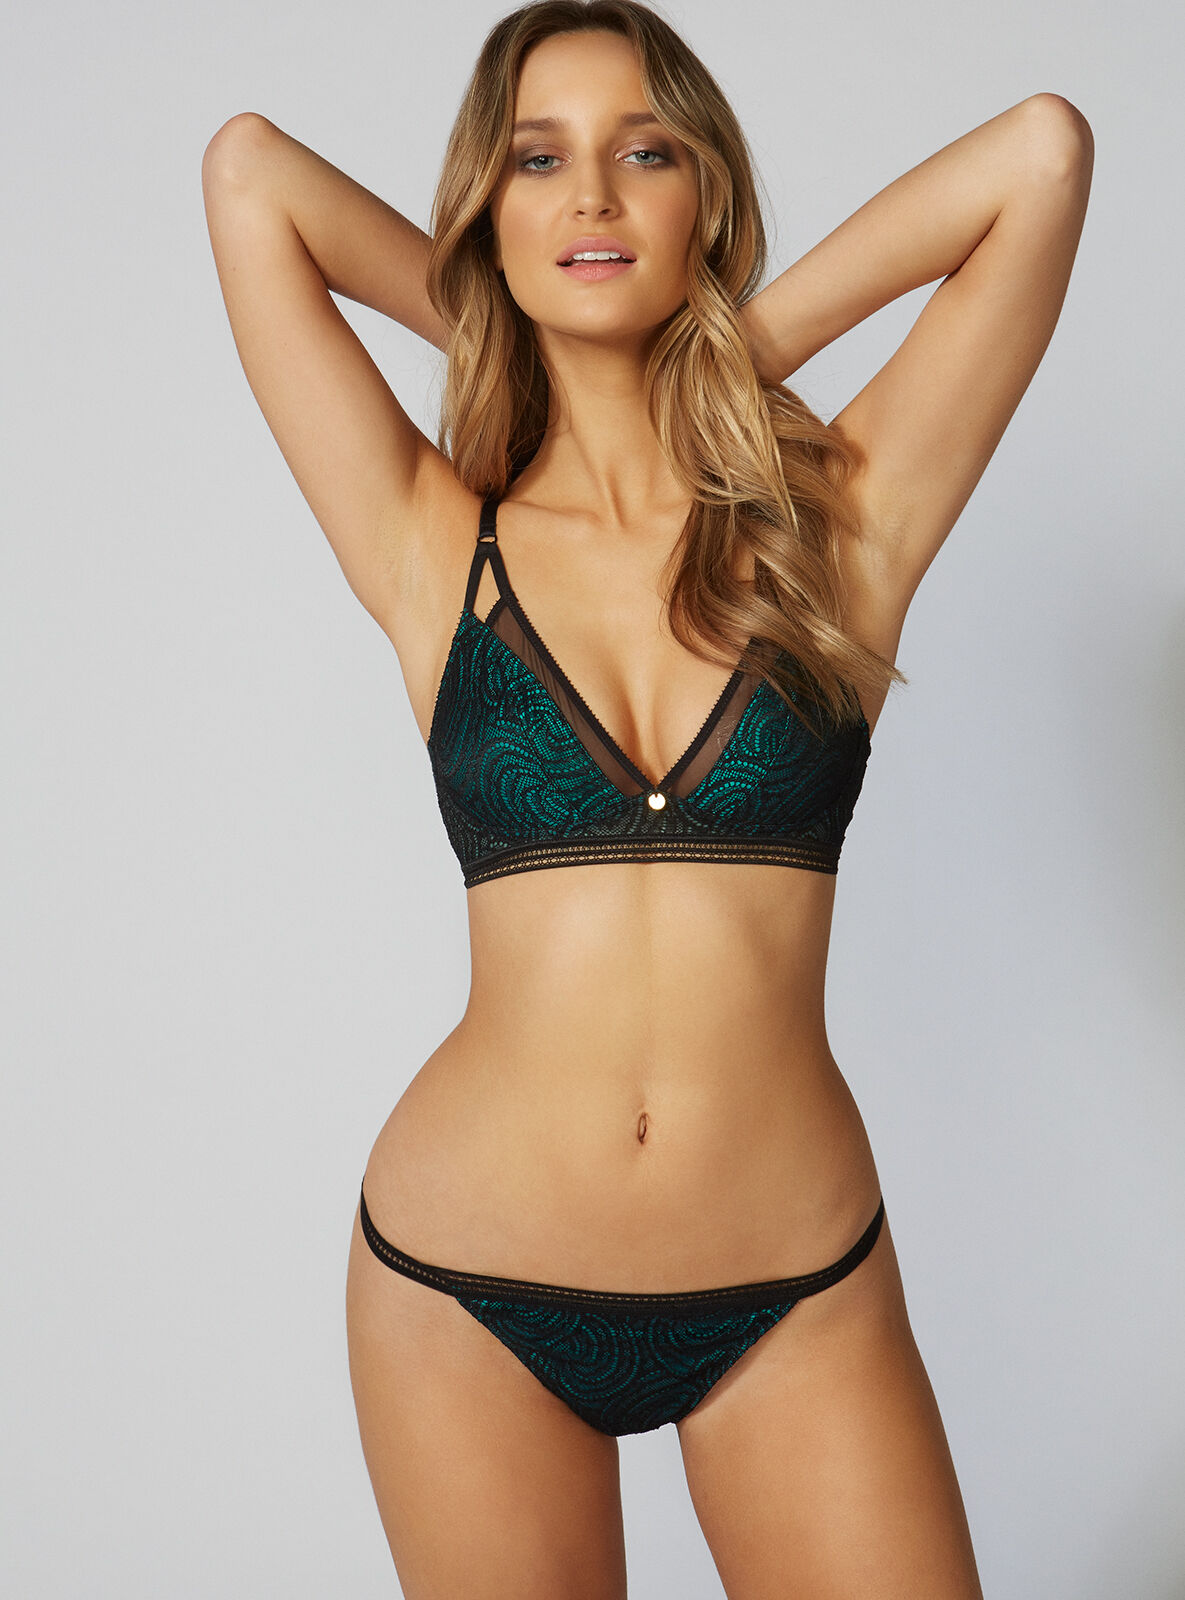 Popular Cheap Price Outlet Store Cheap Online Mel Thong - Green Boux Avenue Discount Get To Buy Visit New xSKomSfxuZ